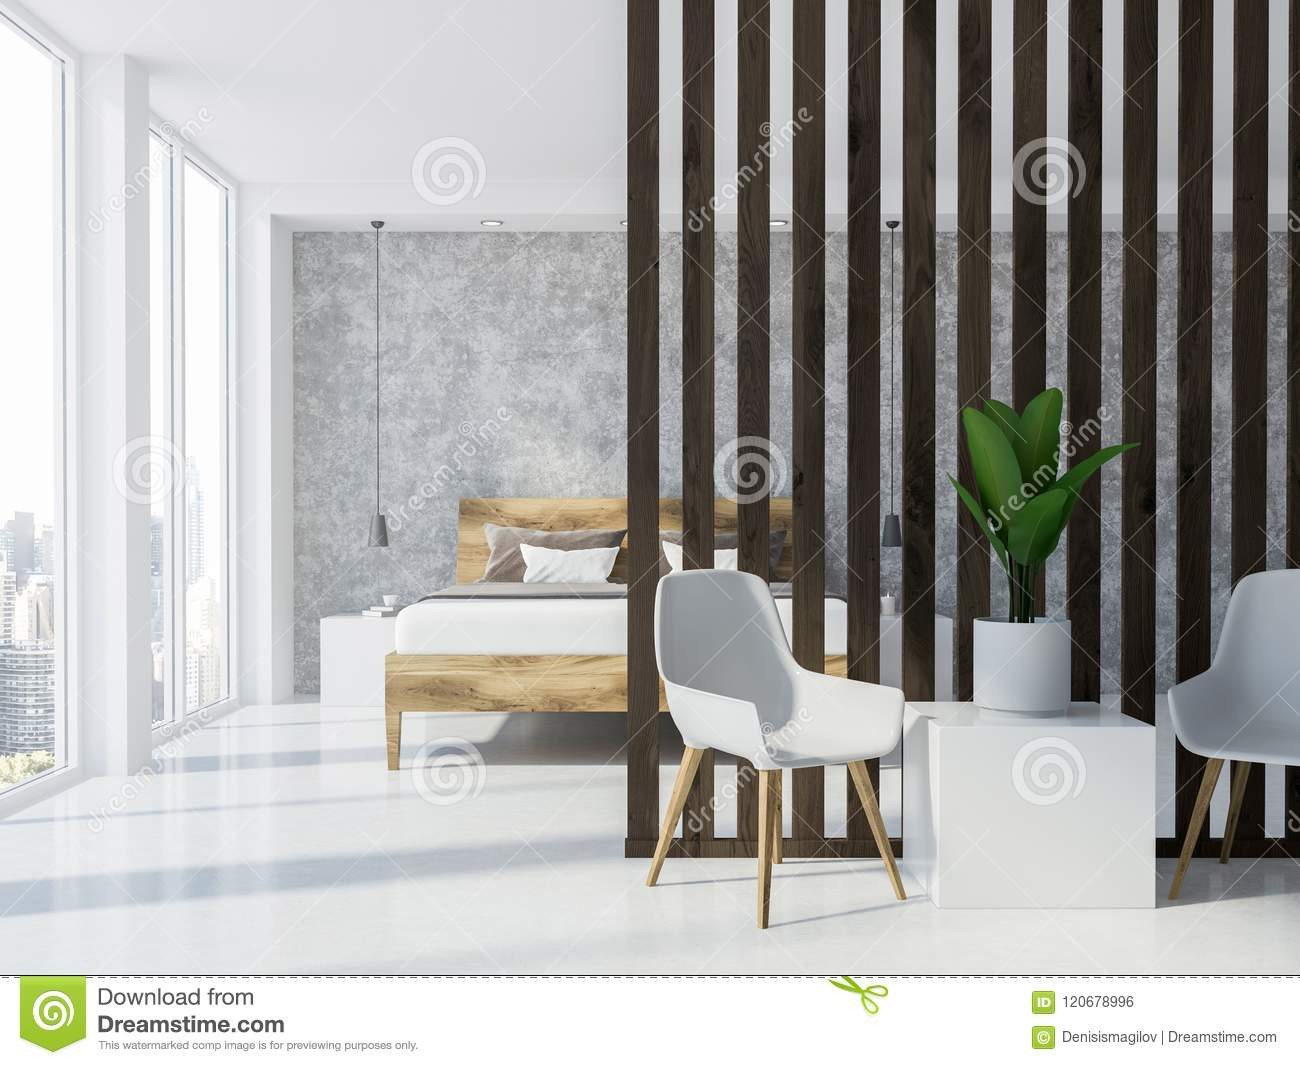 grey hardwood floors bedroom of luxury gray and wooden bedroom interior stock illustration for luxury gray and wooden bedroom interior